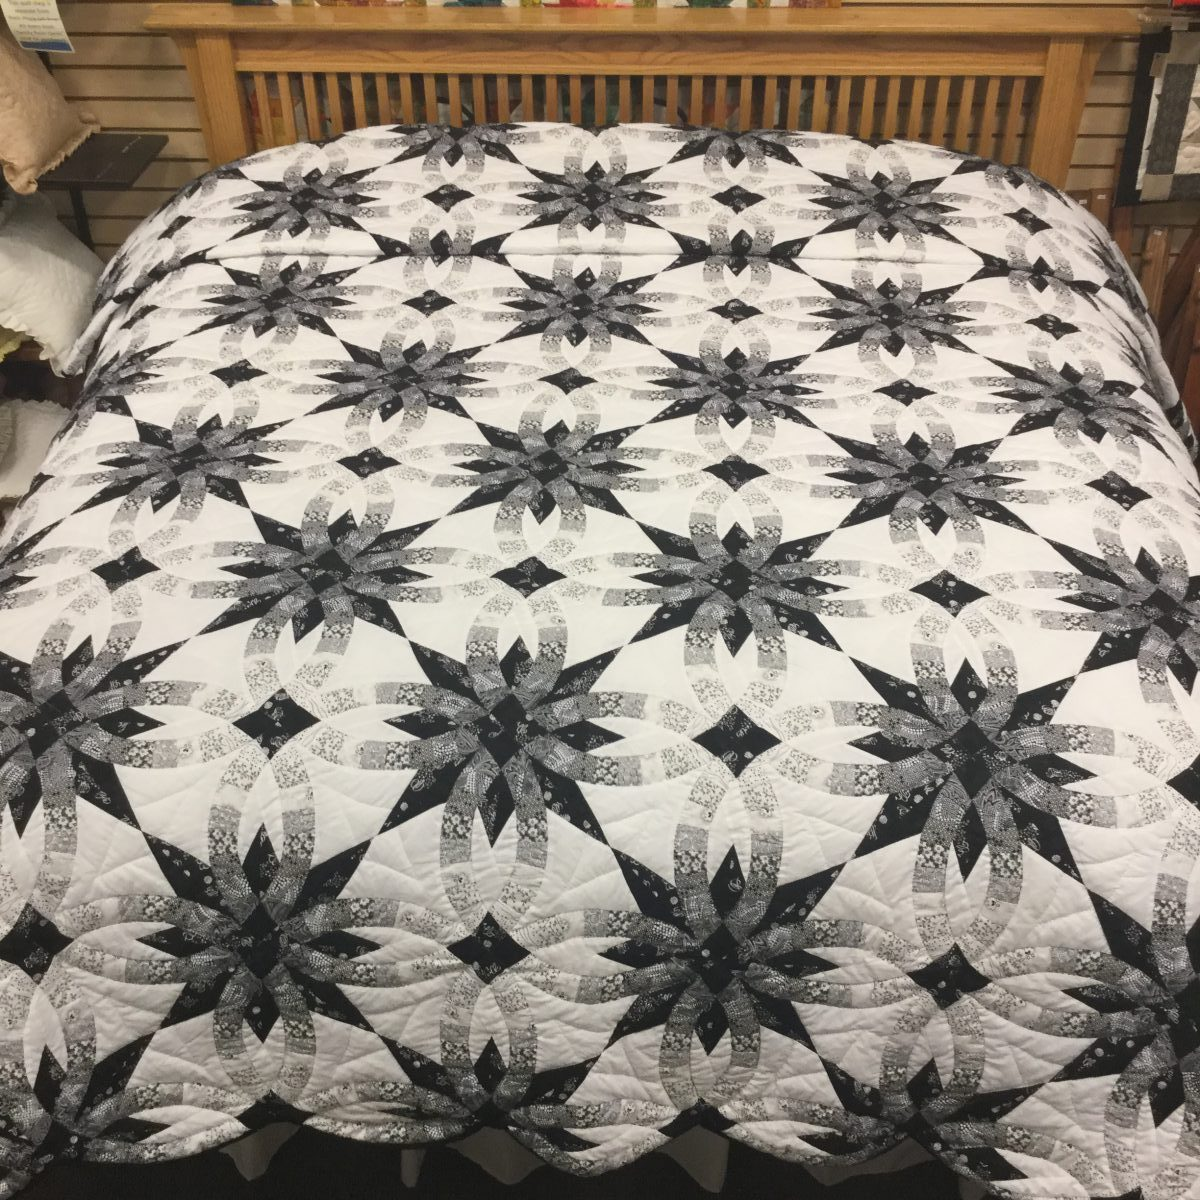 star wedding ring quilt king - Wedding Ring Quilts For Sale